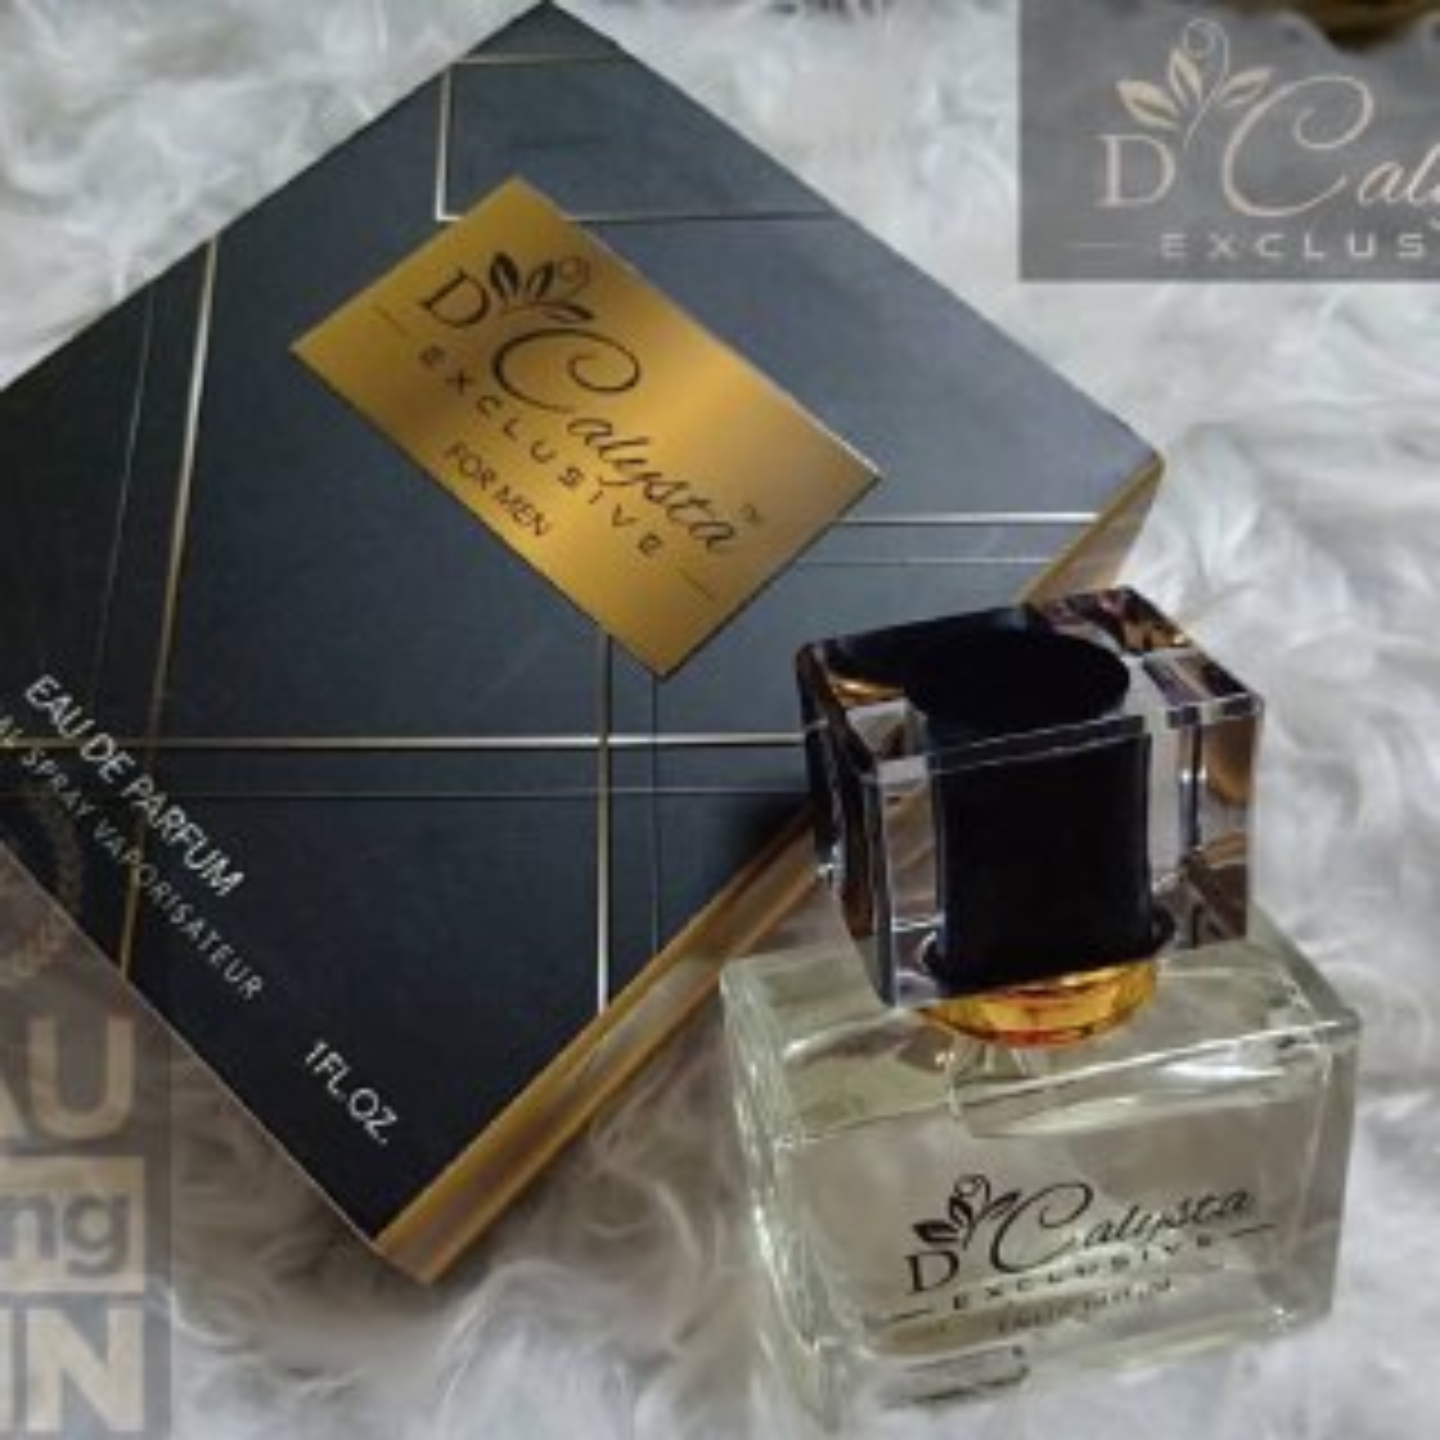 Dcalysta Exclusive Perfume For HIM (2 Bottles)